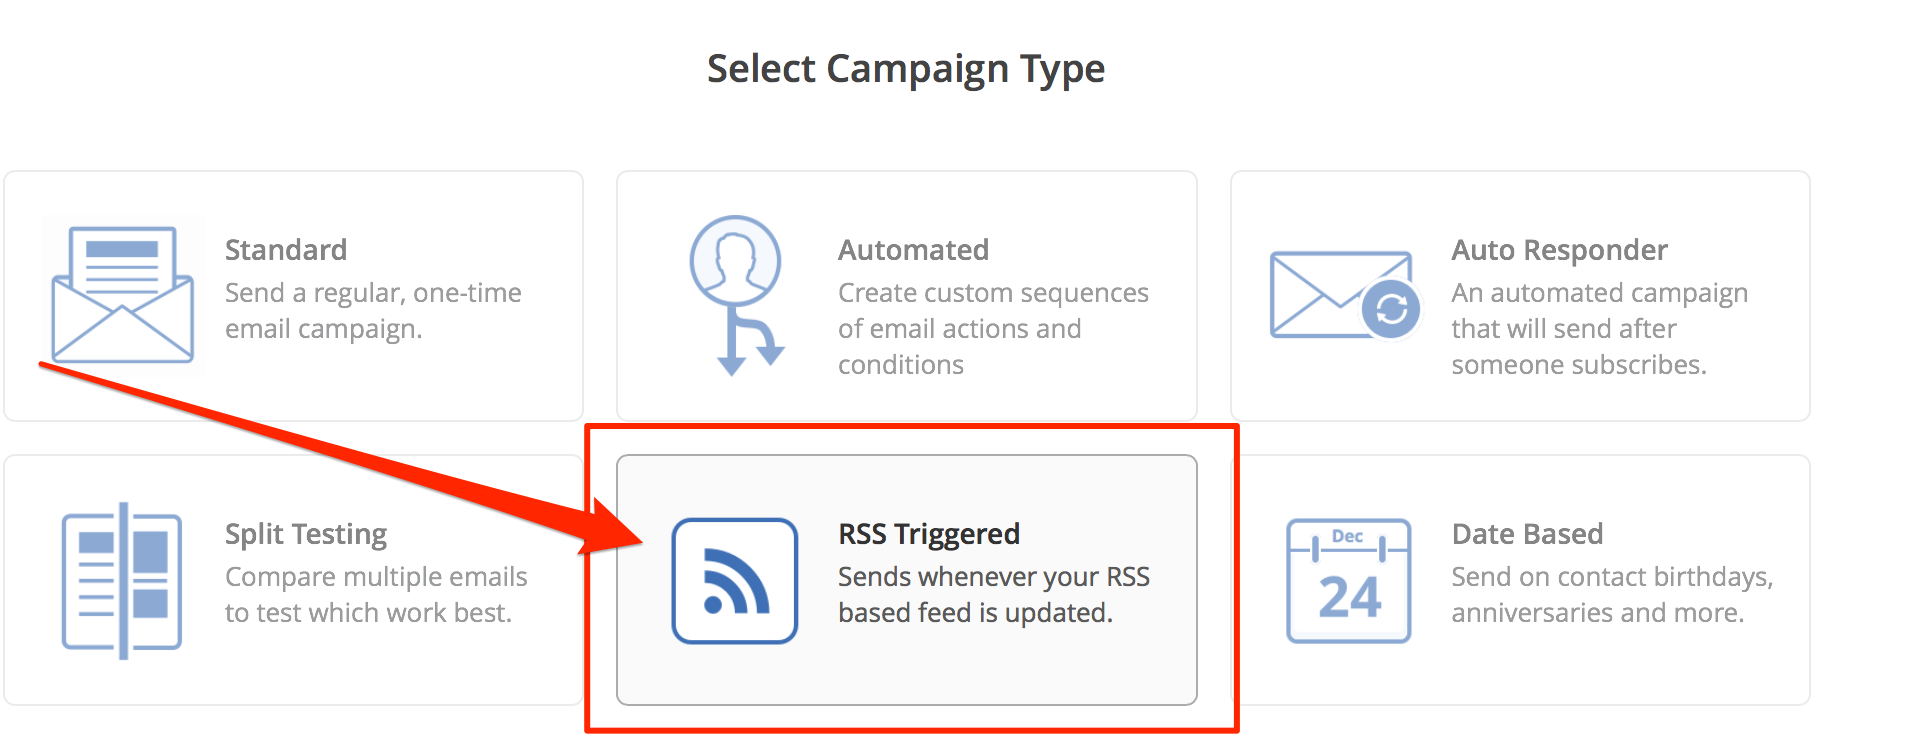 The email campaign types offered by ActiveCampaign